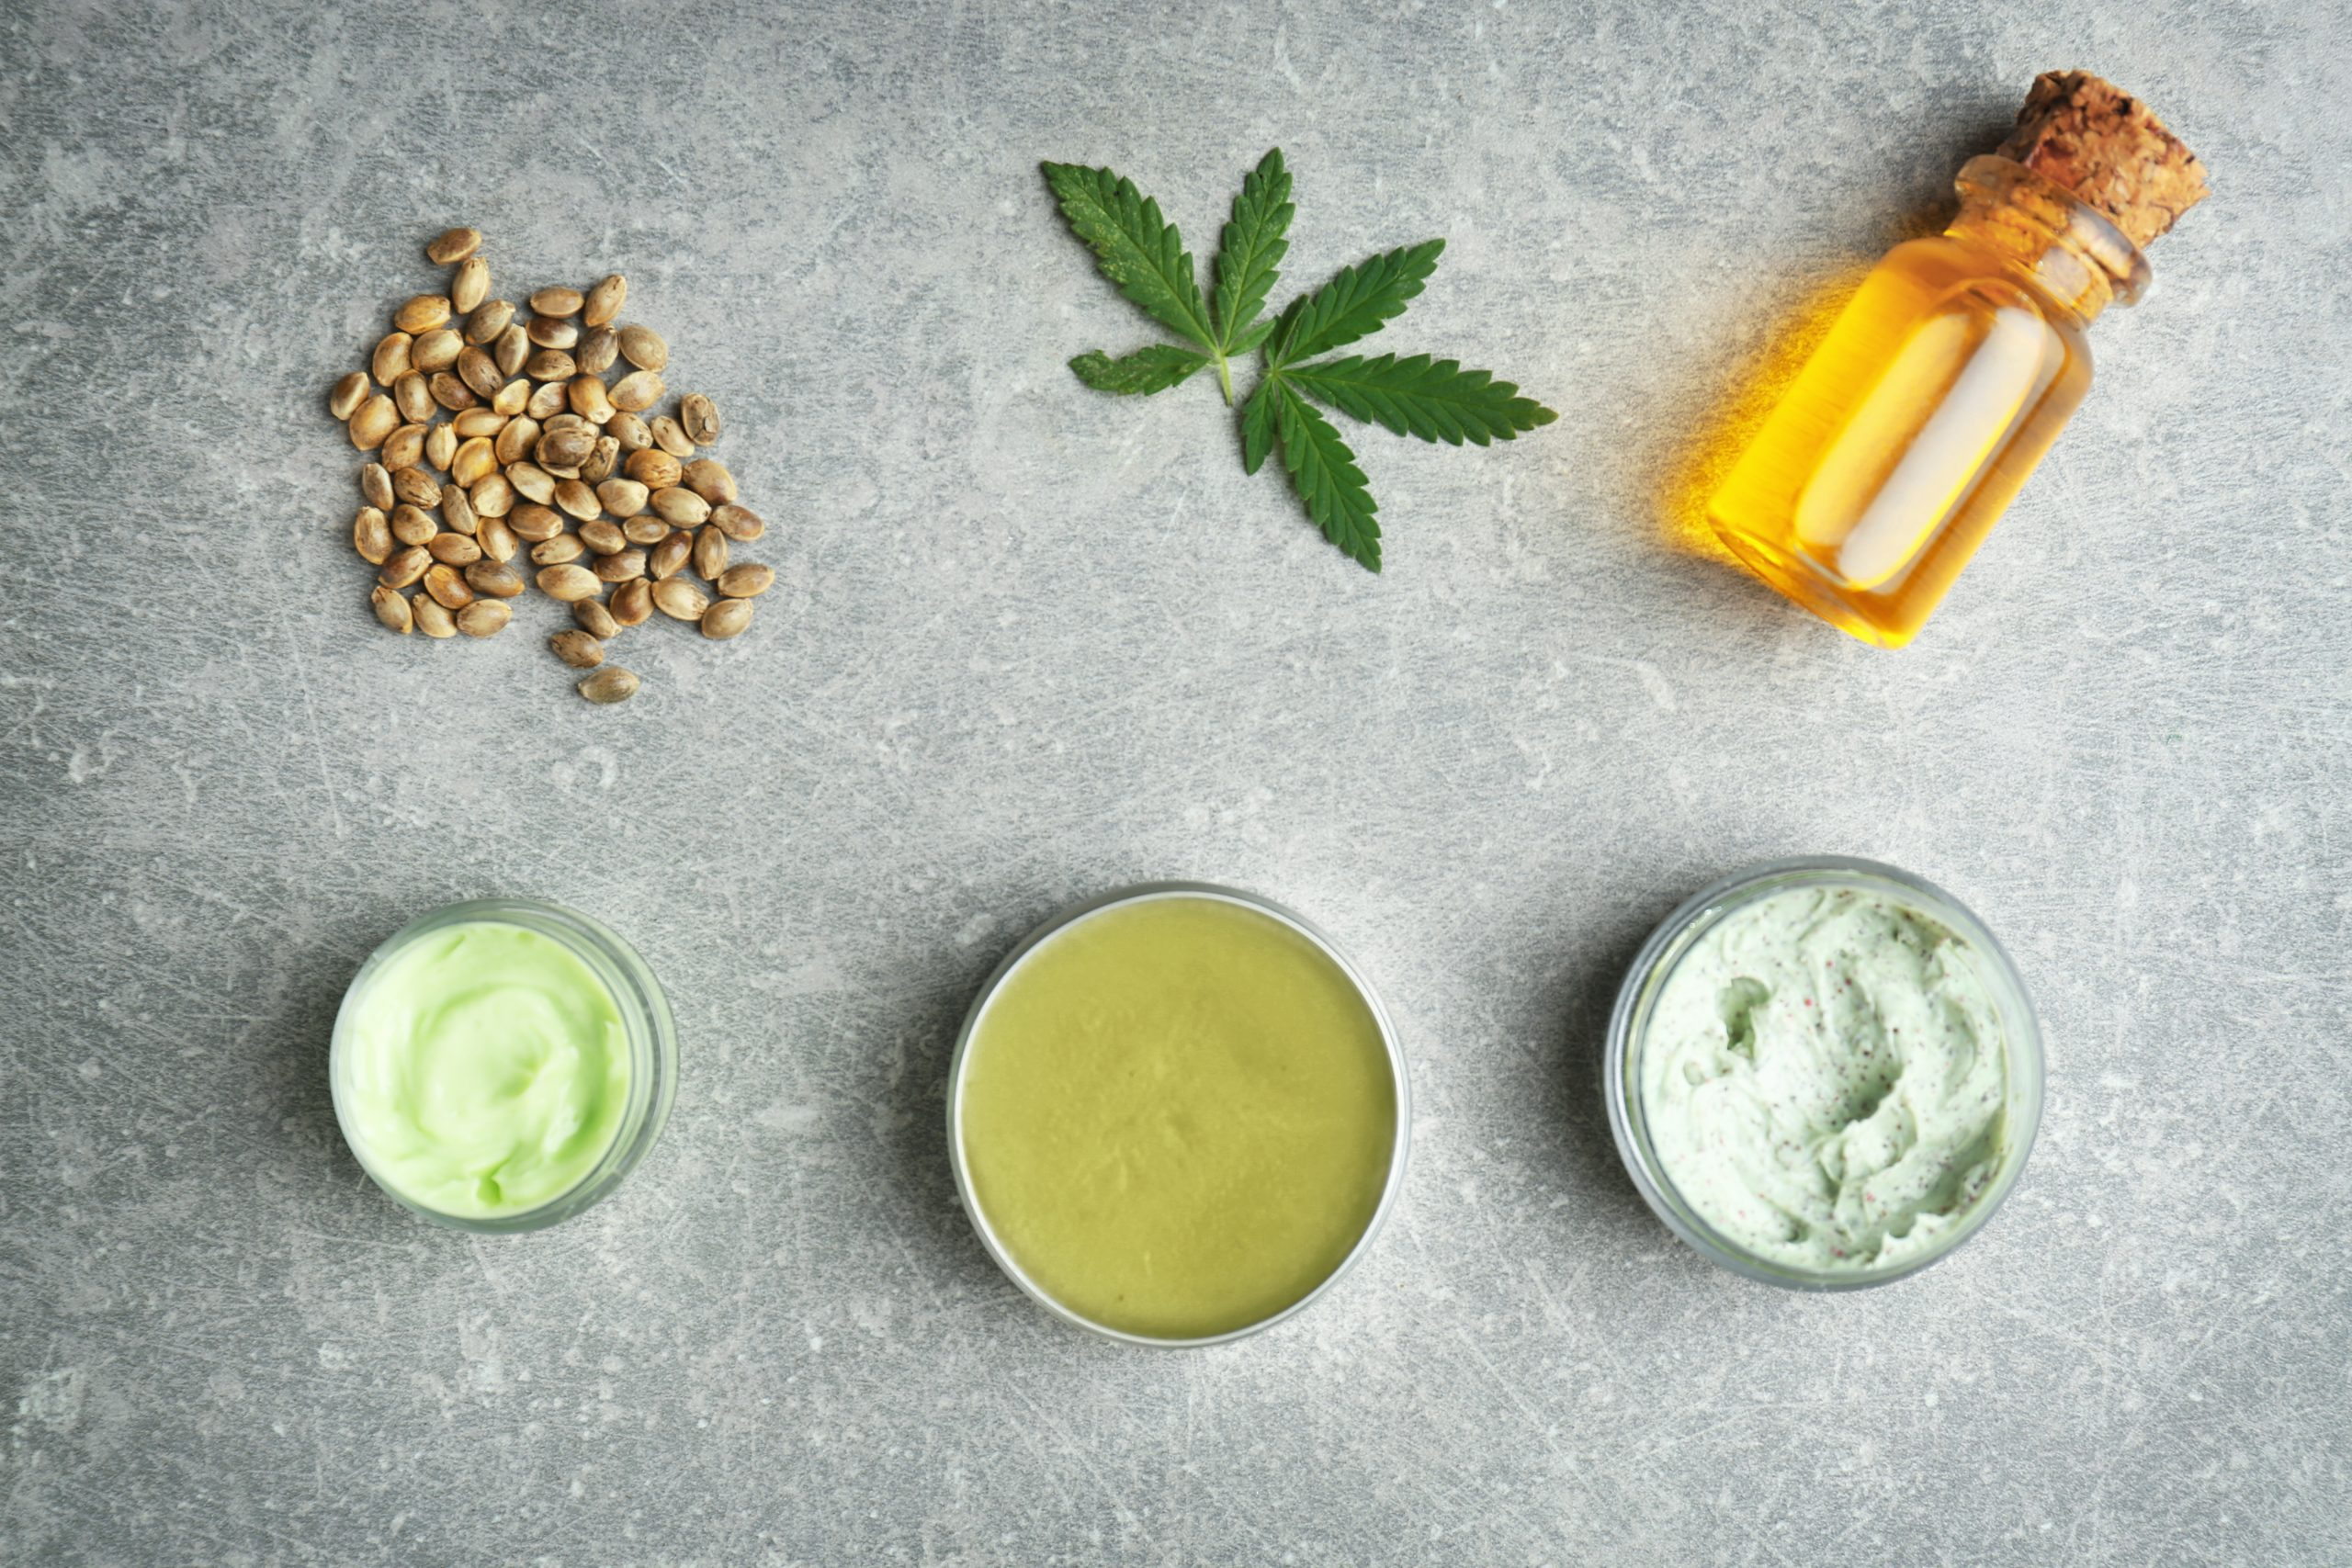 Phytocannabinoids in all forms